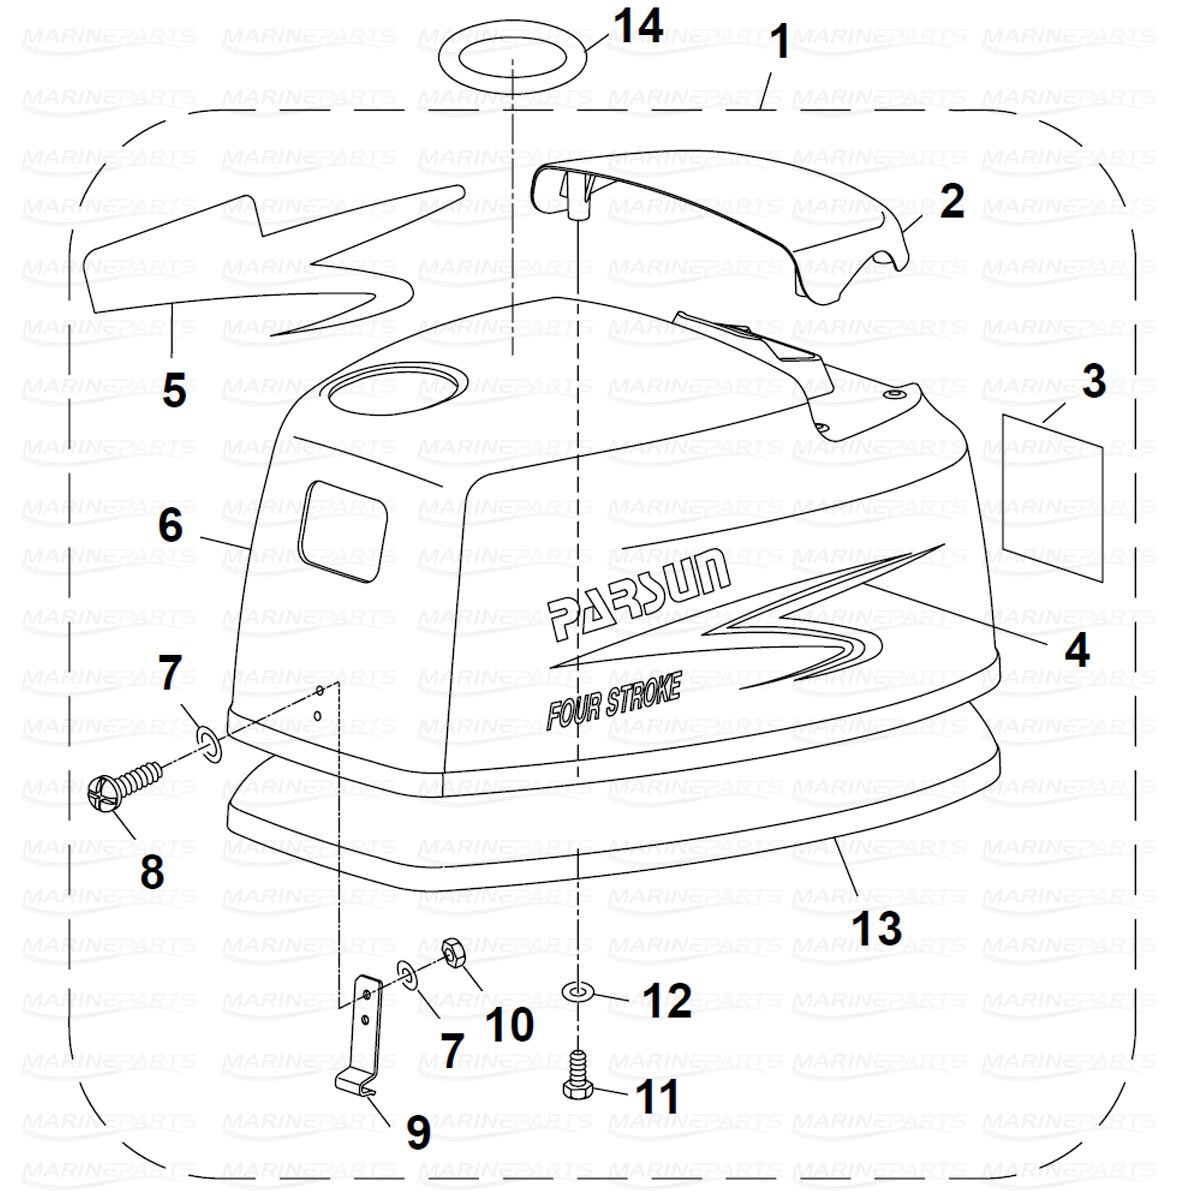 Exploded view engine cover, Parsun 6 hp